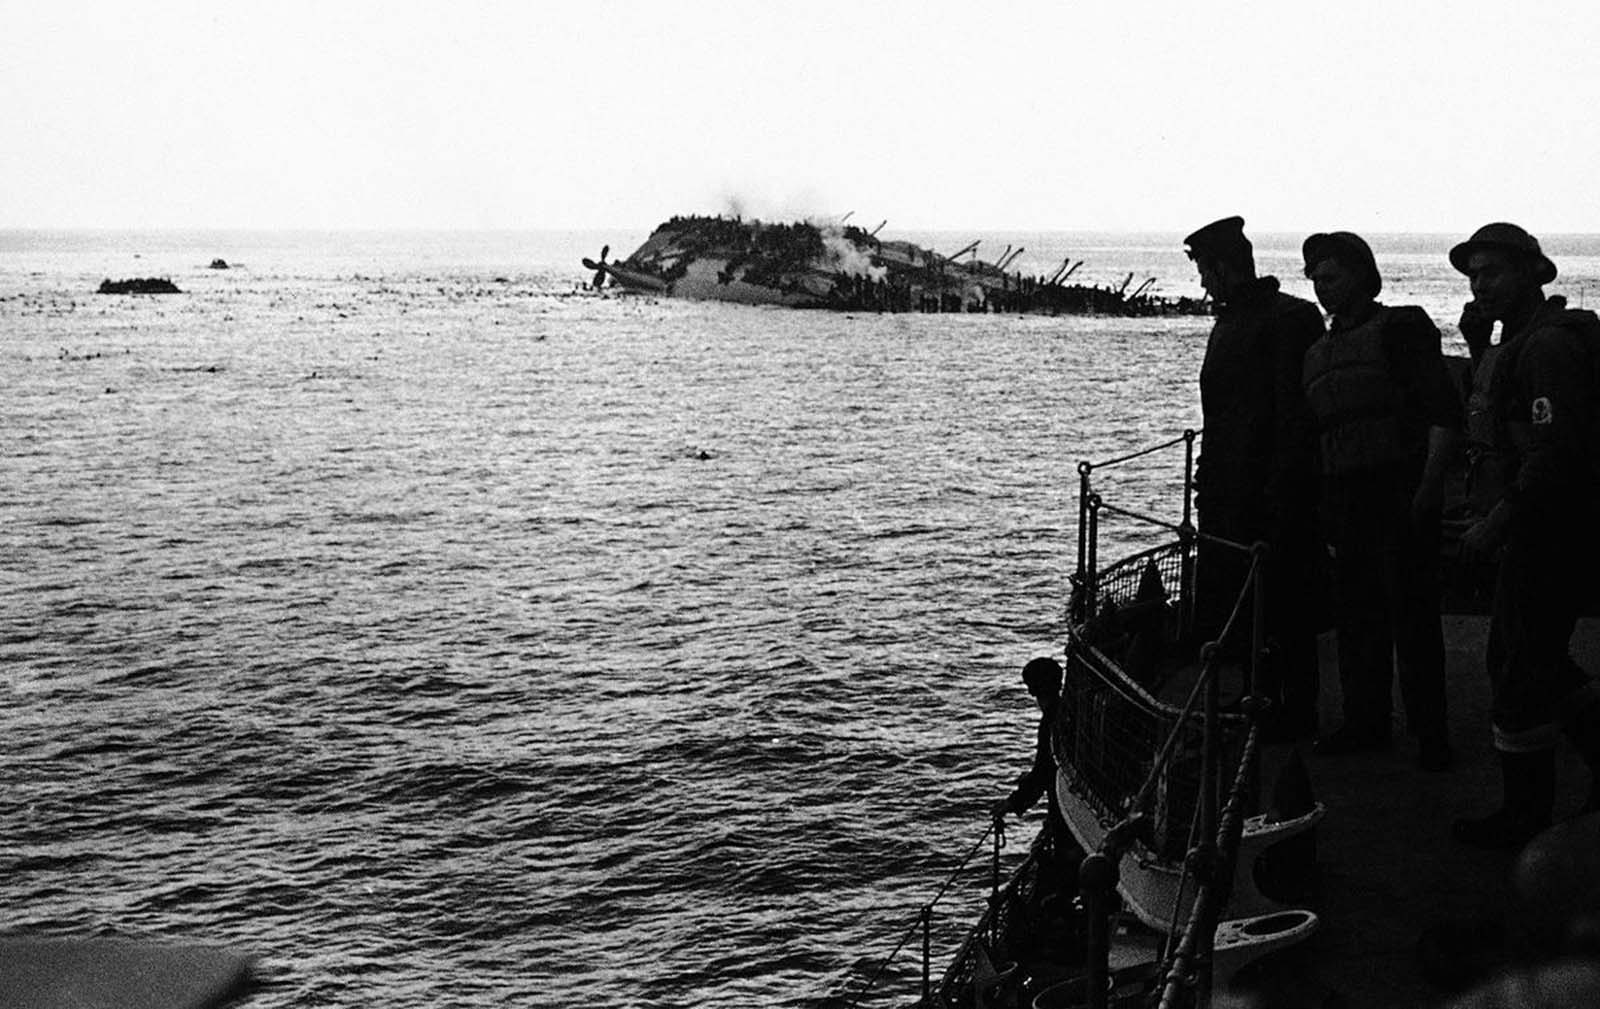 The dramatic and tragic scene as the Cunard White Star liner Lancastria was sunk on August 3, 1940. The Lancastria was evacuating British nationals and troops from France, and had boarded as many as possible for the short trip - an estimated 4,000 to 9,000 passengers were aboard. A German Junkers 88 aircraft bombed the ship shortly after it departed, and it sank within twenty minutes. While 2,477 were rescued, an estimated 4,000 others perished by bomb blasts, strafing, drowning, or choking in oil-fouled water. Photo taken from one of the rescue boats as the liner heels over, as men swarm down her sides and swim for safety to the rescue ships. Note the large number of bobbing heads in the water.